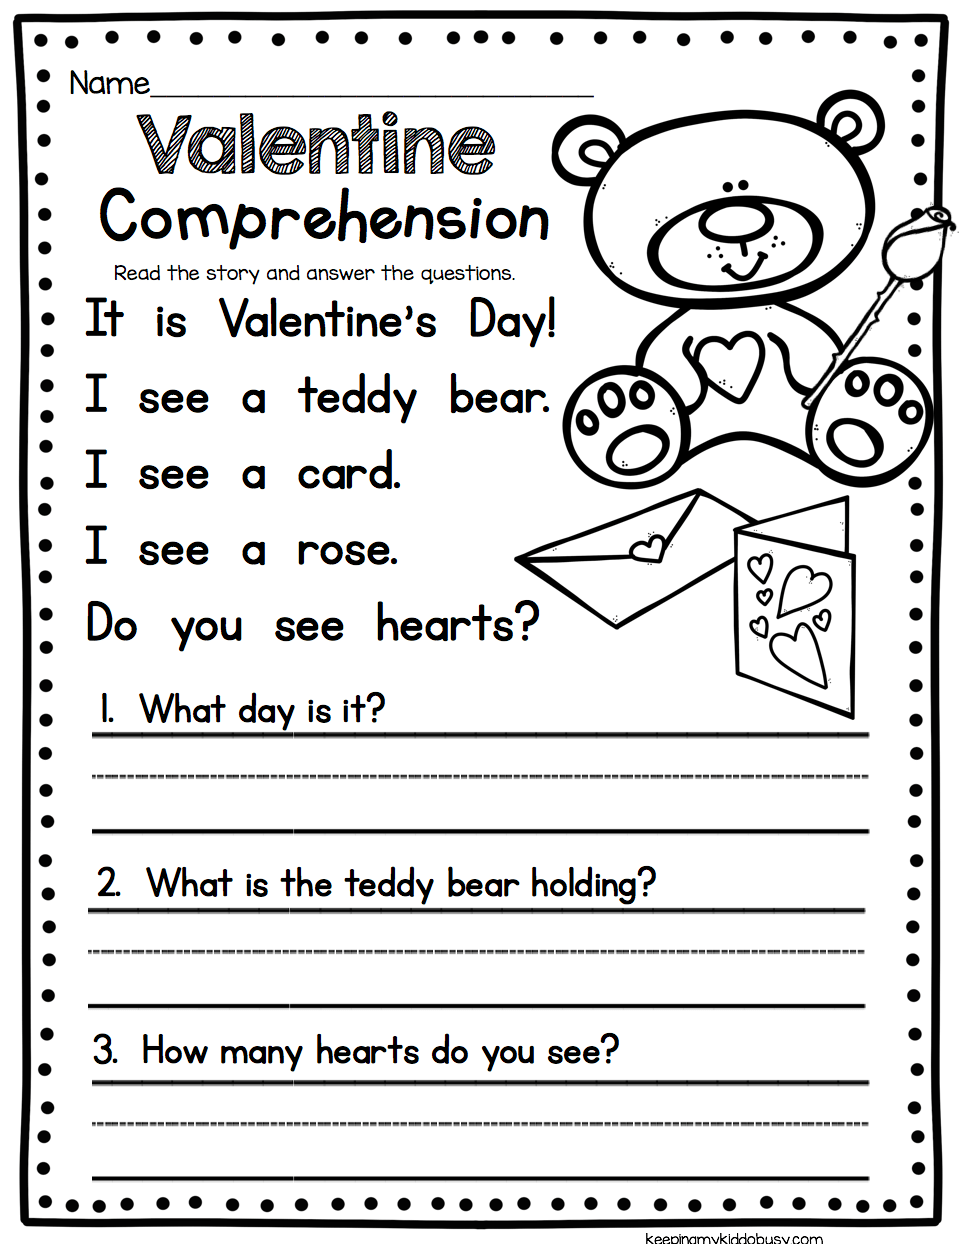 Worksheets Easy Reading Comprehension Worksheets february math ela pack freebies in kindergarten valentines day comprehension worksheet easy reading activity for or first grade